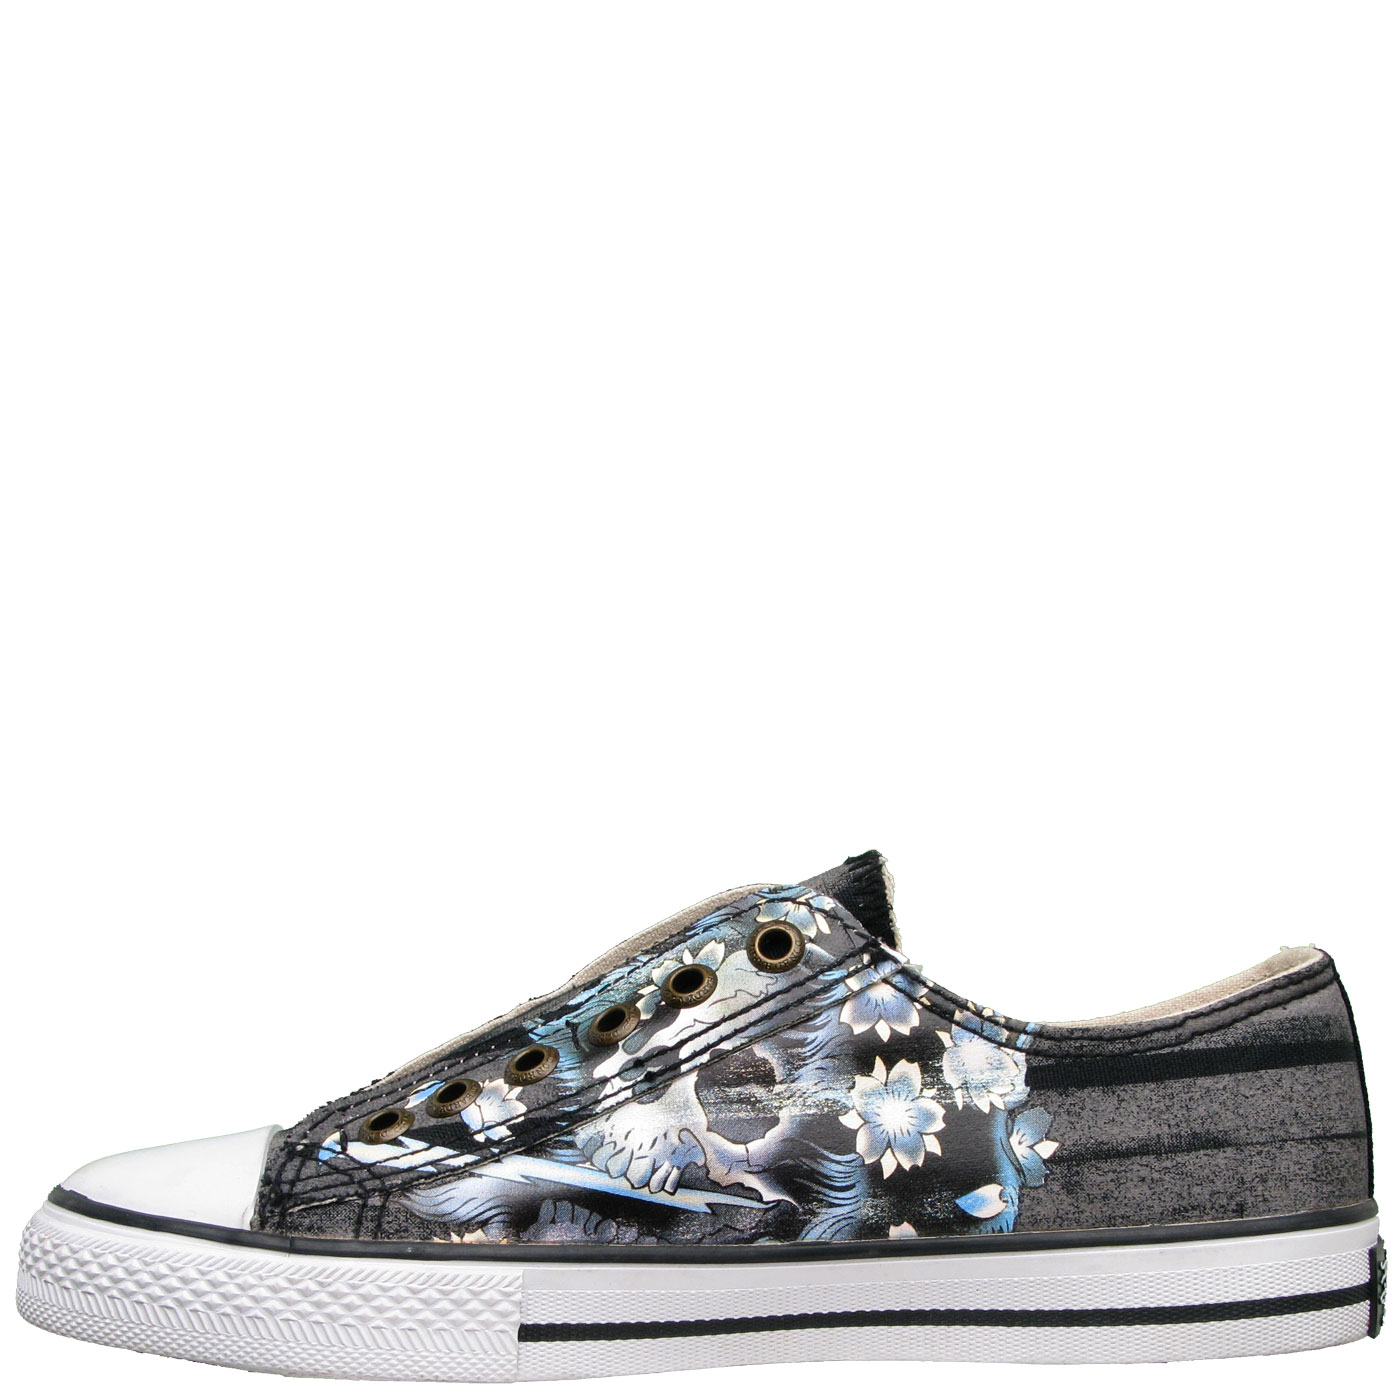 Ed Hardy Lowrise Serrano Shoe for Women - Black